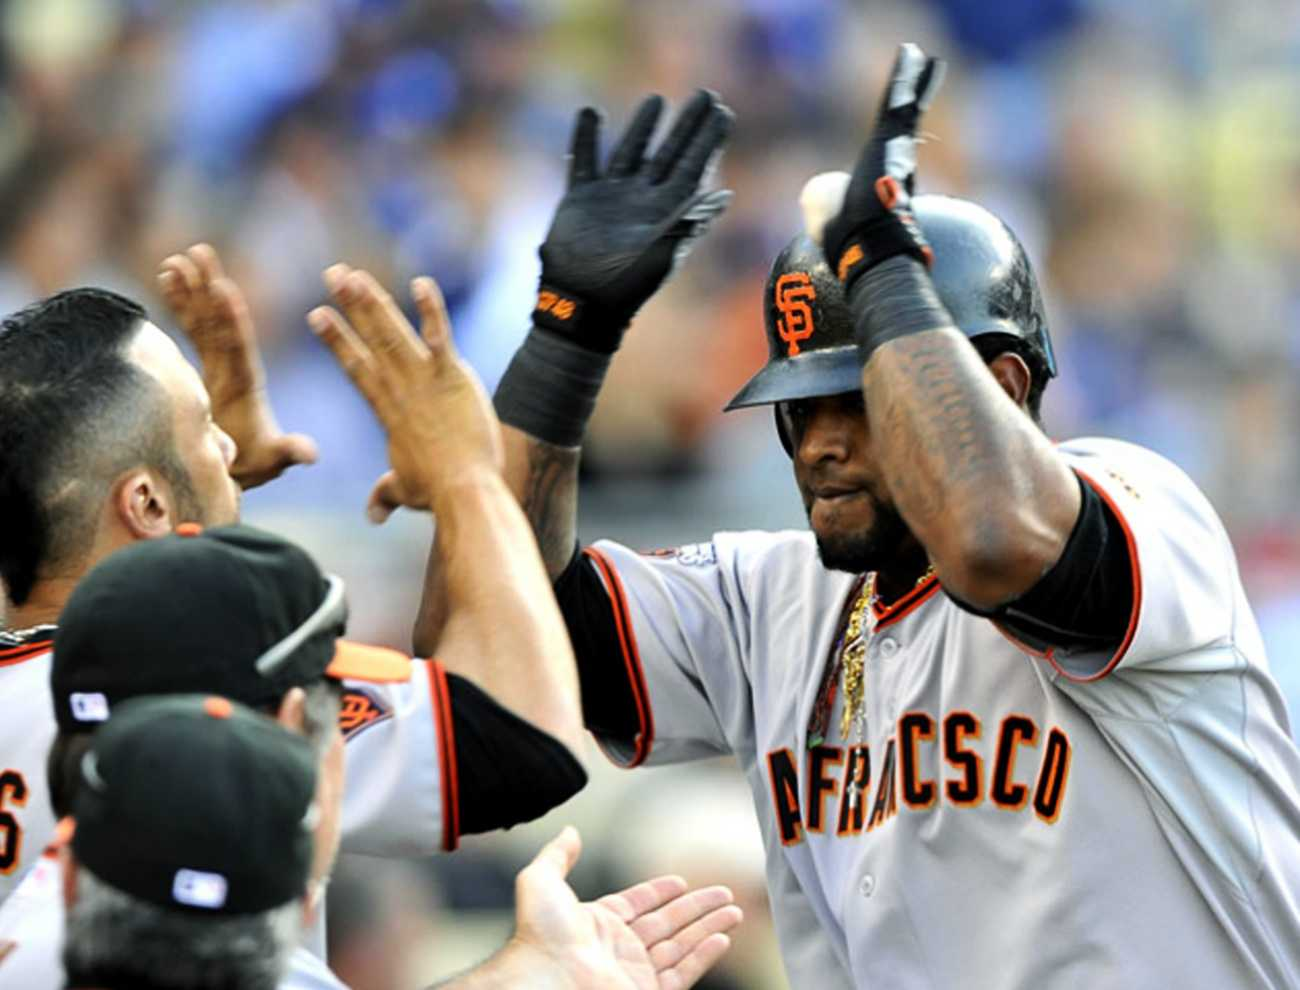 Sandoval return to Giants is official: 'I learned my lesson'